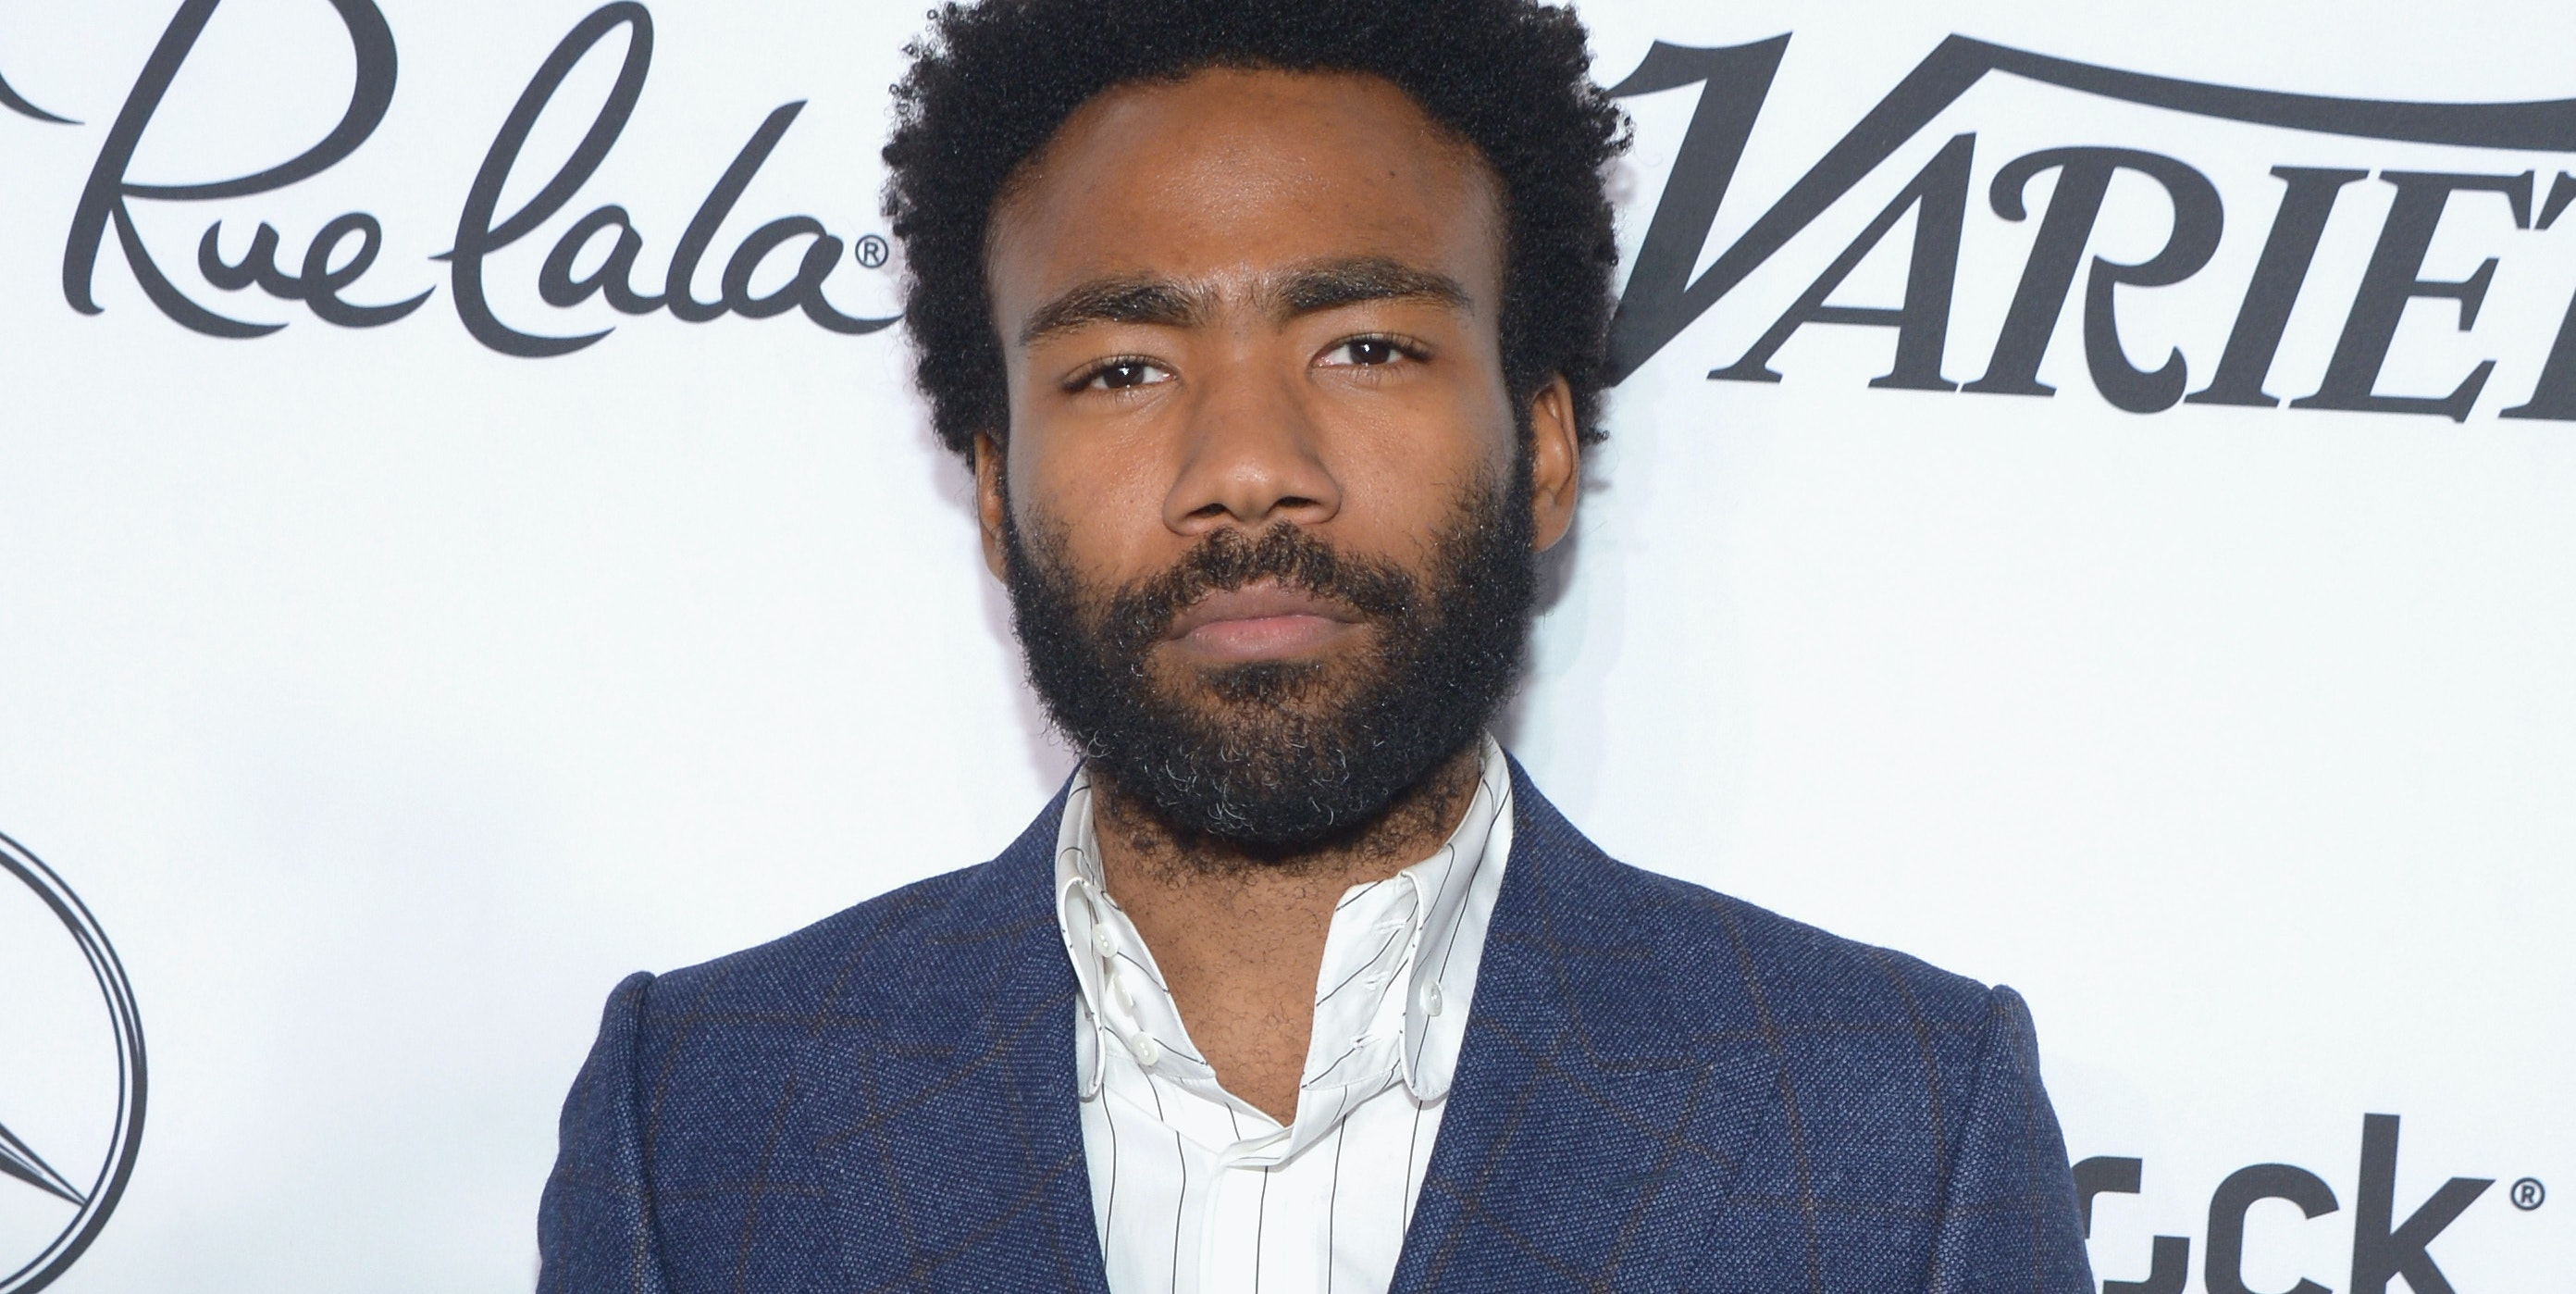 WEST HOLLYWOOD, CA - SEPTEMBER 16:  Actor Donald Glover attends Variety and Women in Film's Pre-Emmy Celebration at Gracias Madre on September 16, 2016 in West Hollywood, California.  (Photo by Matt Winkelmeyer/Getty Images)